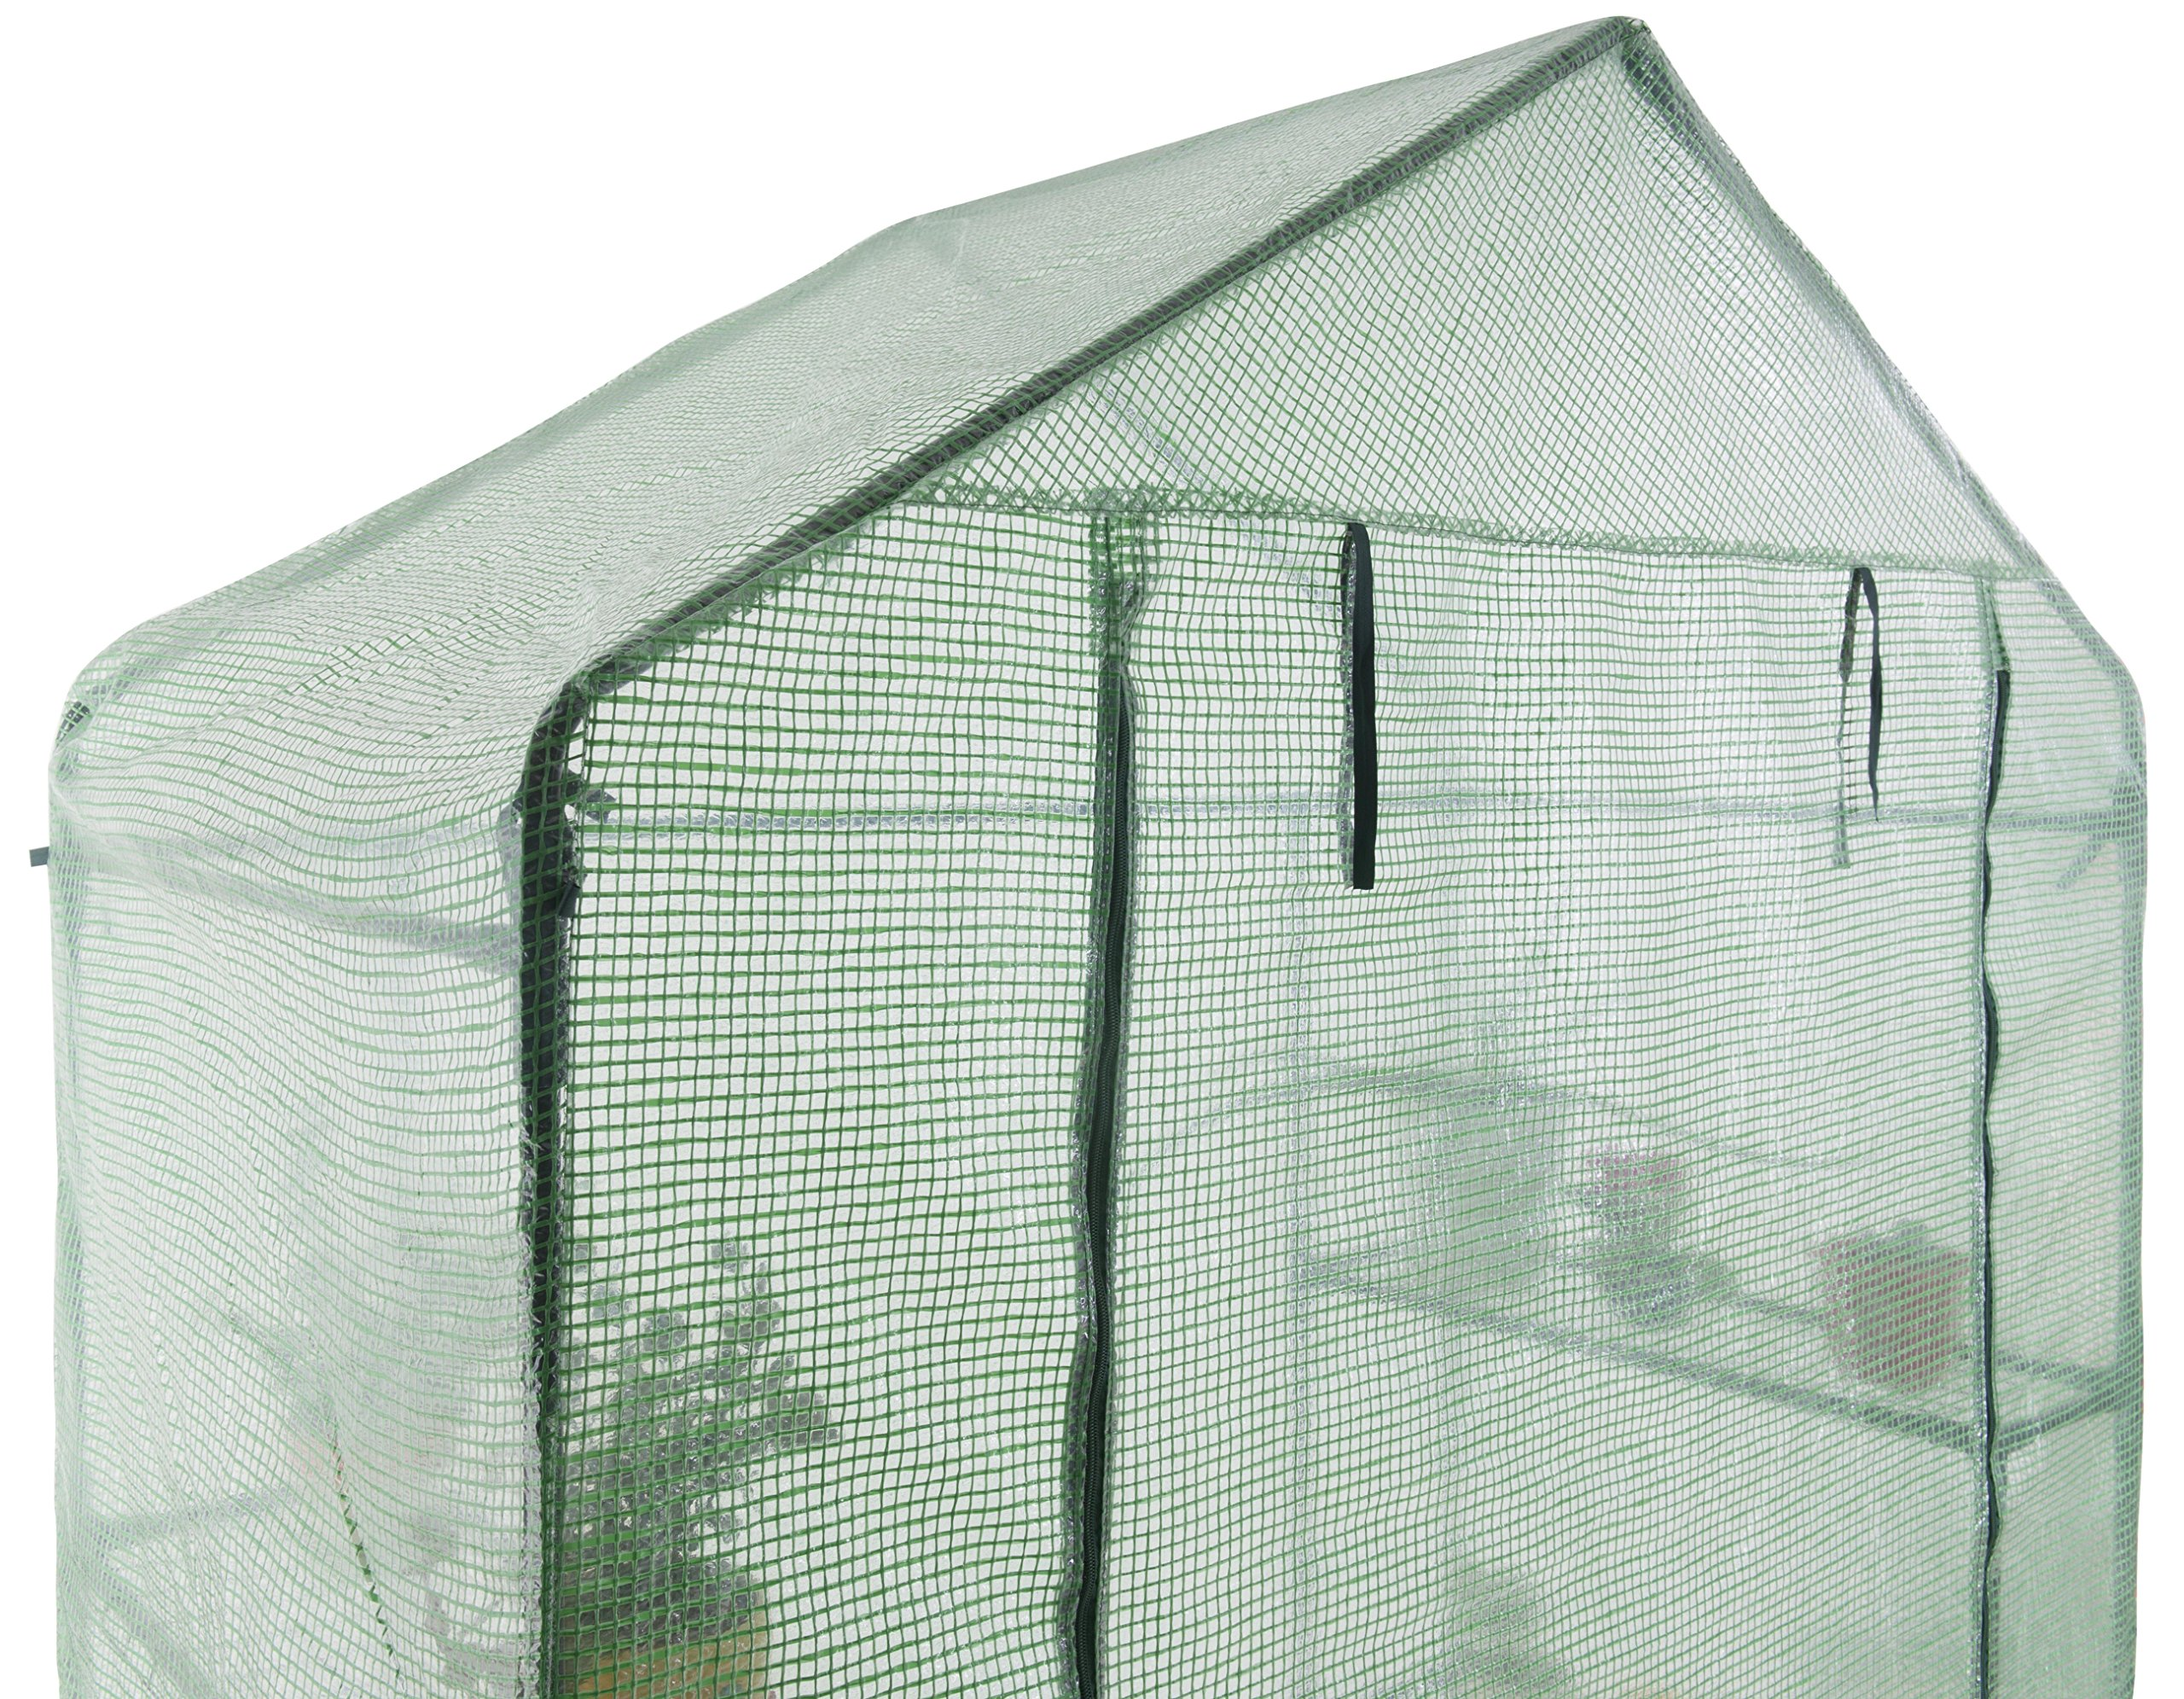 GOJOOASIS Walk in Portable Garden Greenhouse Mini Plants Shed Hot House with 3 Tiers by GOJOOASIS (Image #7)